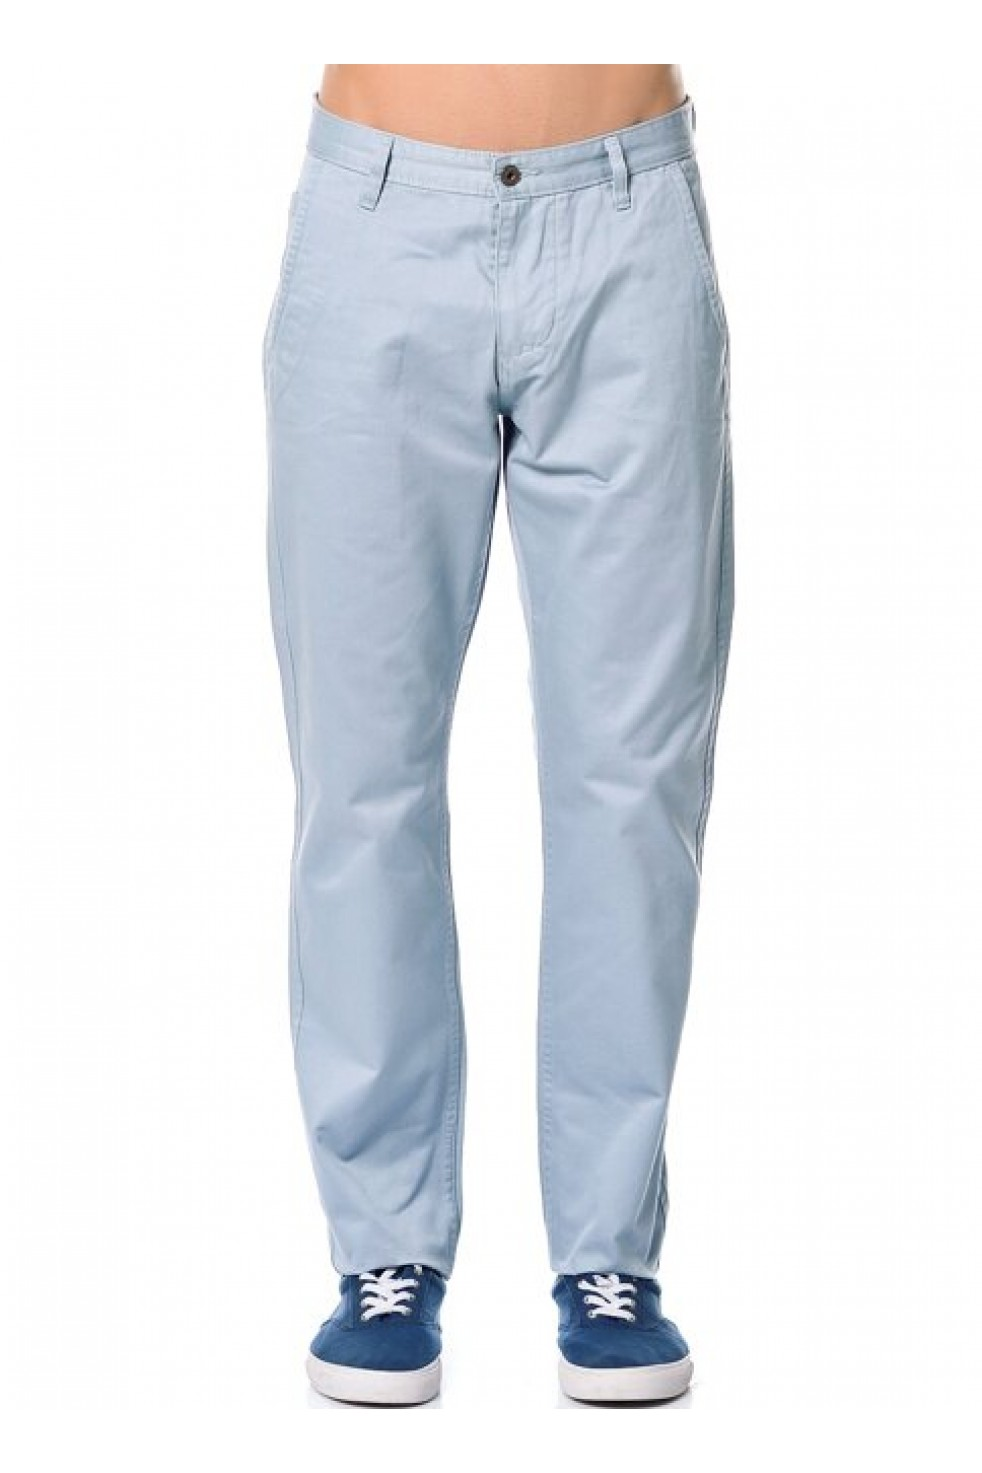 Dockers-Erkek-Pantolon-Alpa-K-Haki-Tapered-44715-0316